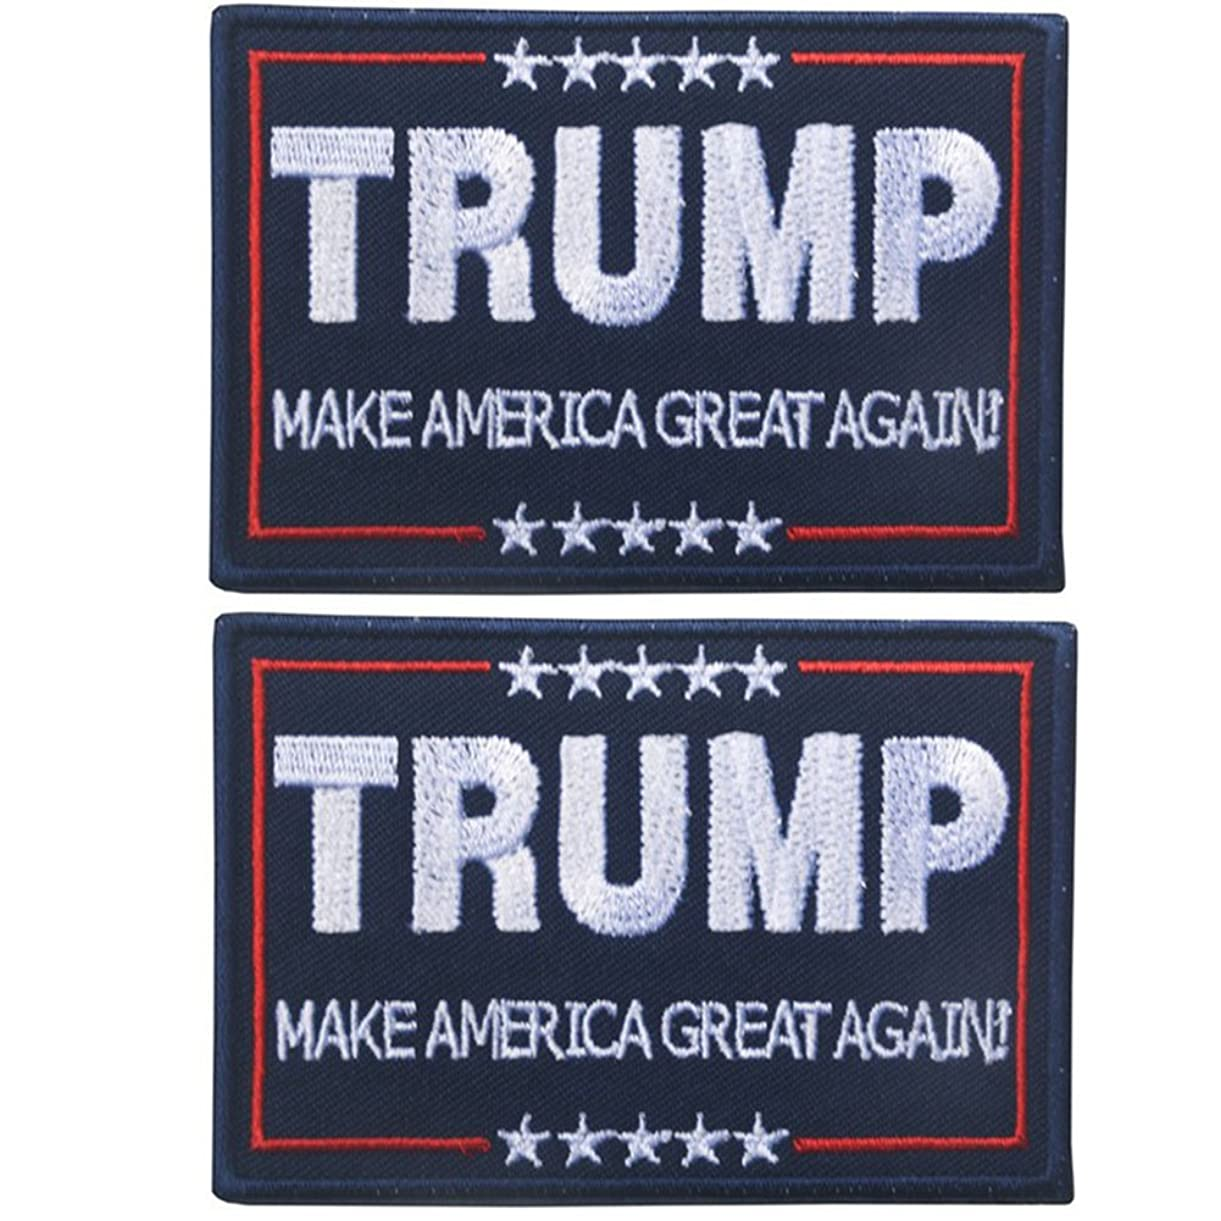 OSdream Bundle 2 pieces - MAKE AMERICA GREAT AGAIN Embroidered Patch (Color 1) mremf3855